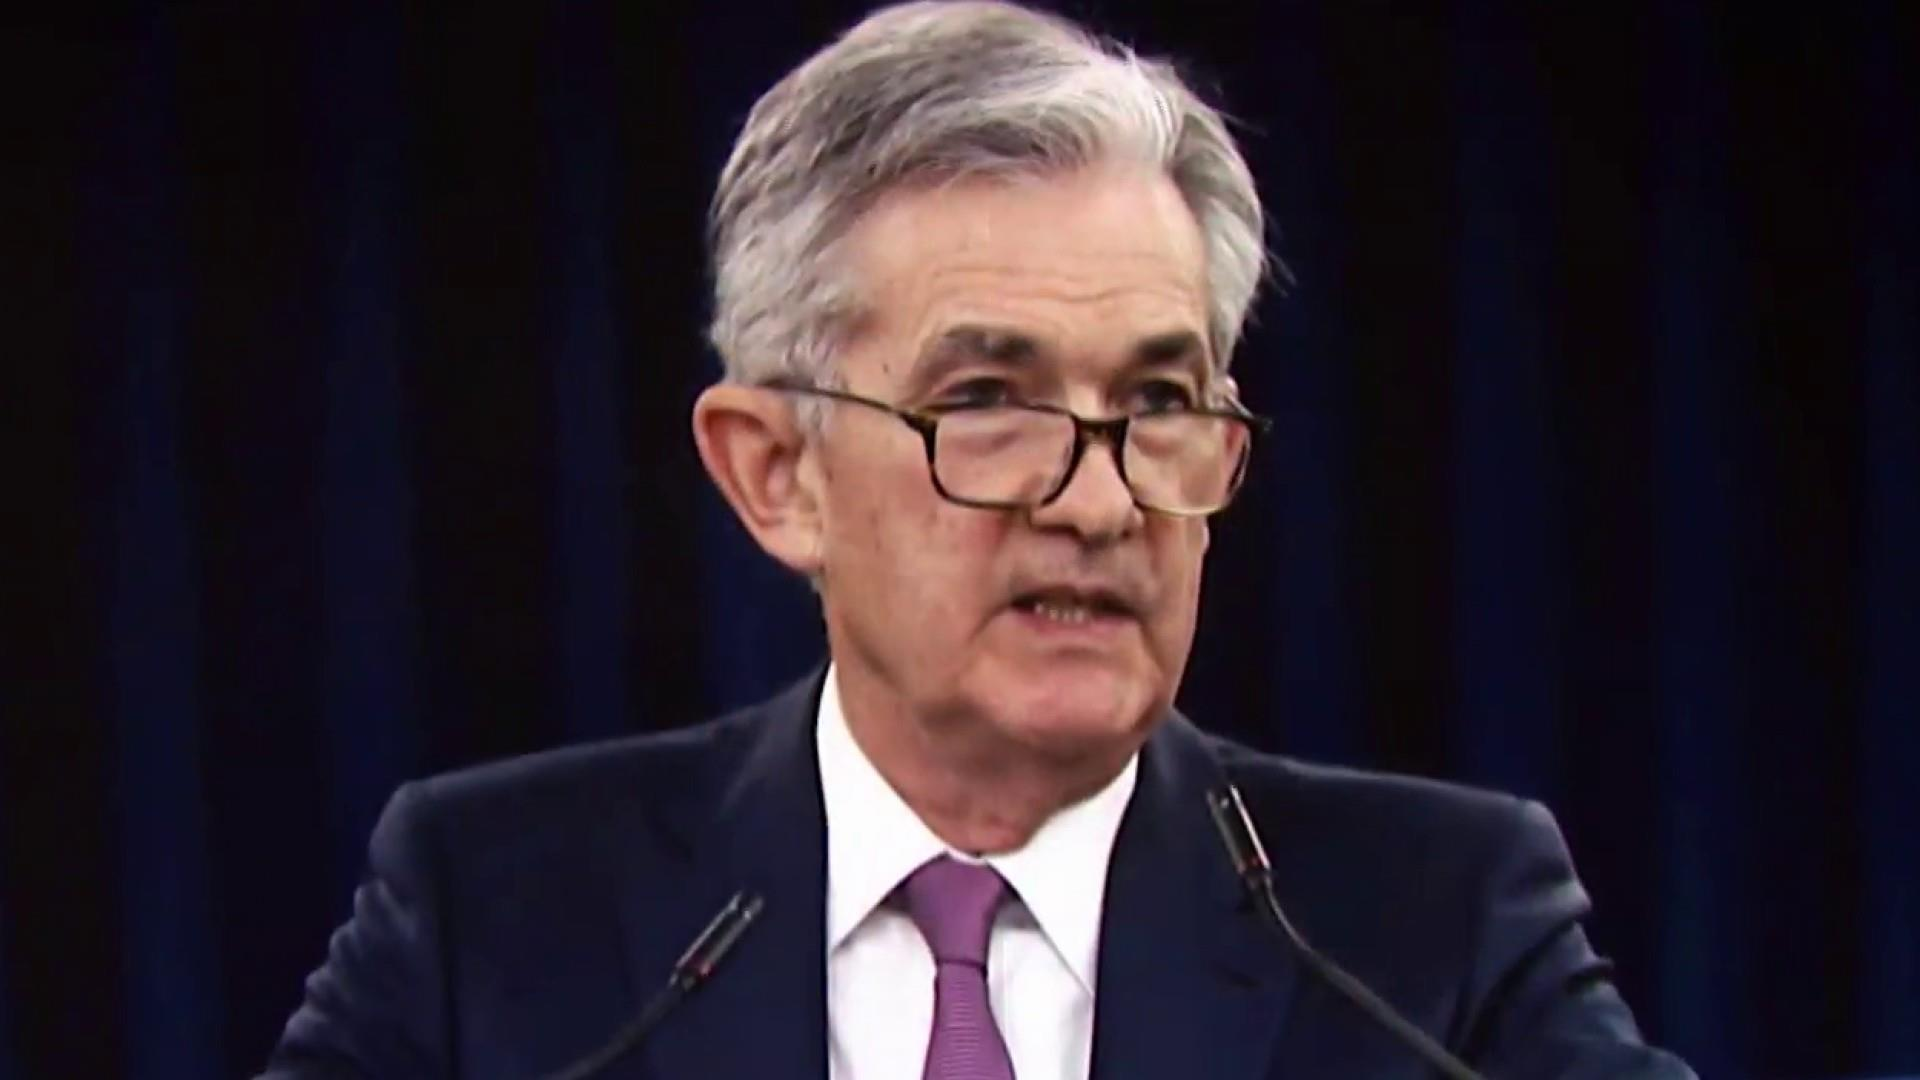 Fed poised to cut rate for 2nd time in 3 months